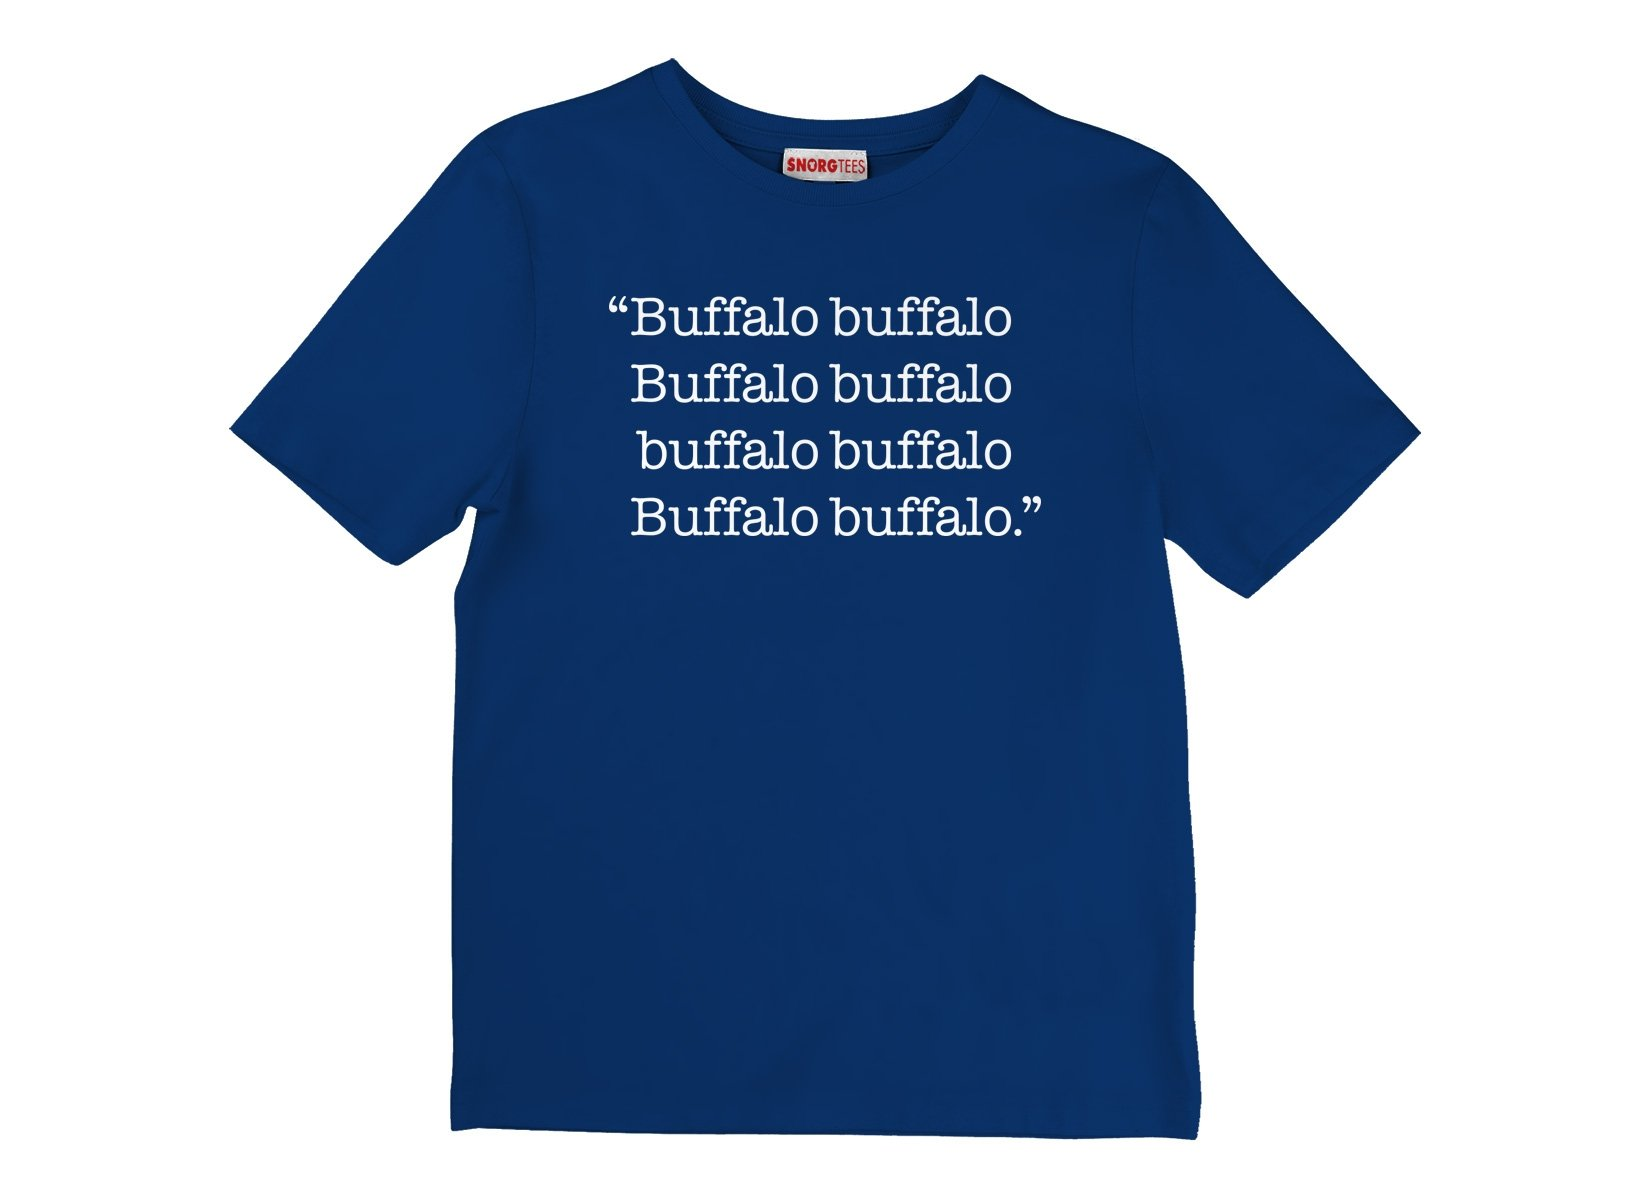 Buffalo buffalo on Kids T-Shirt